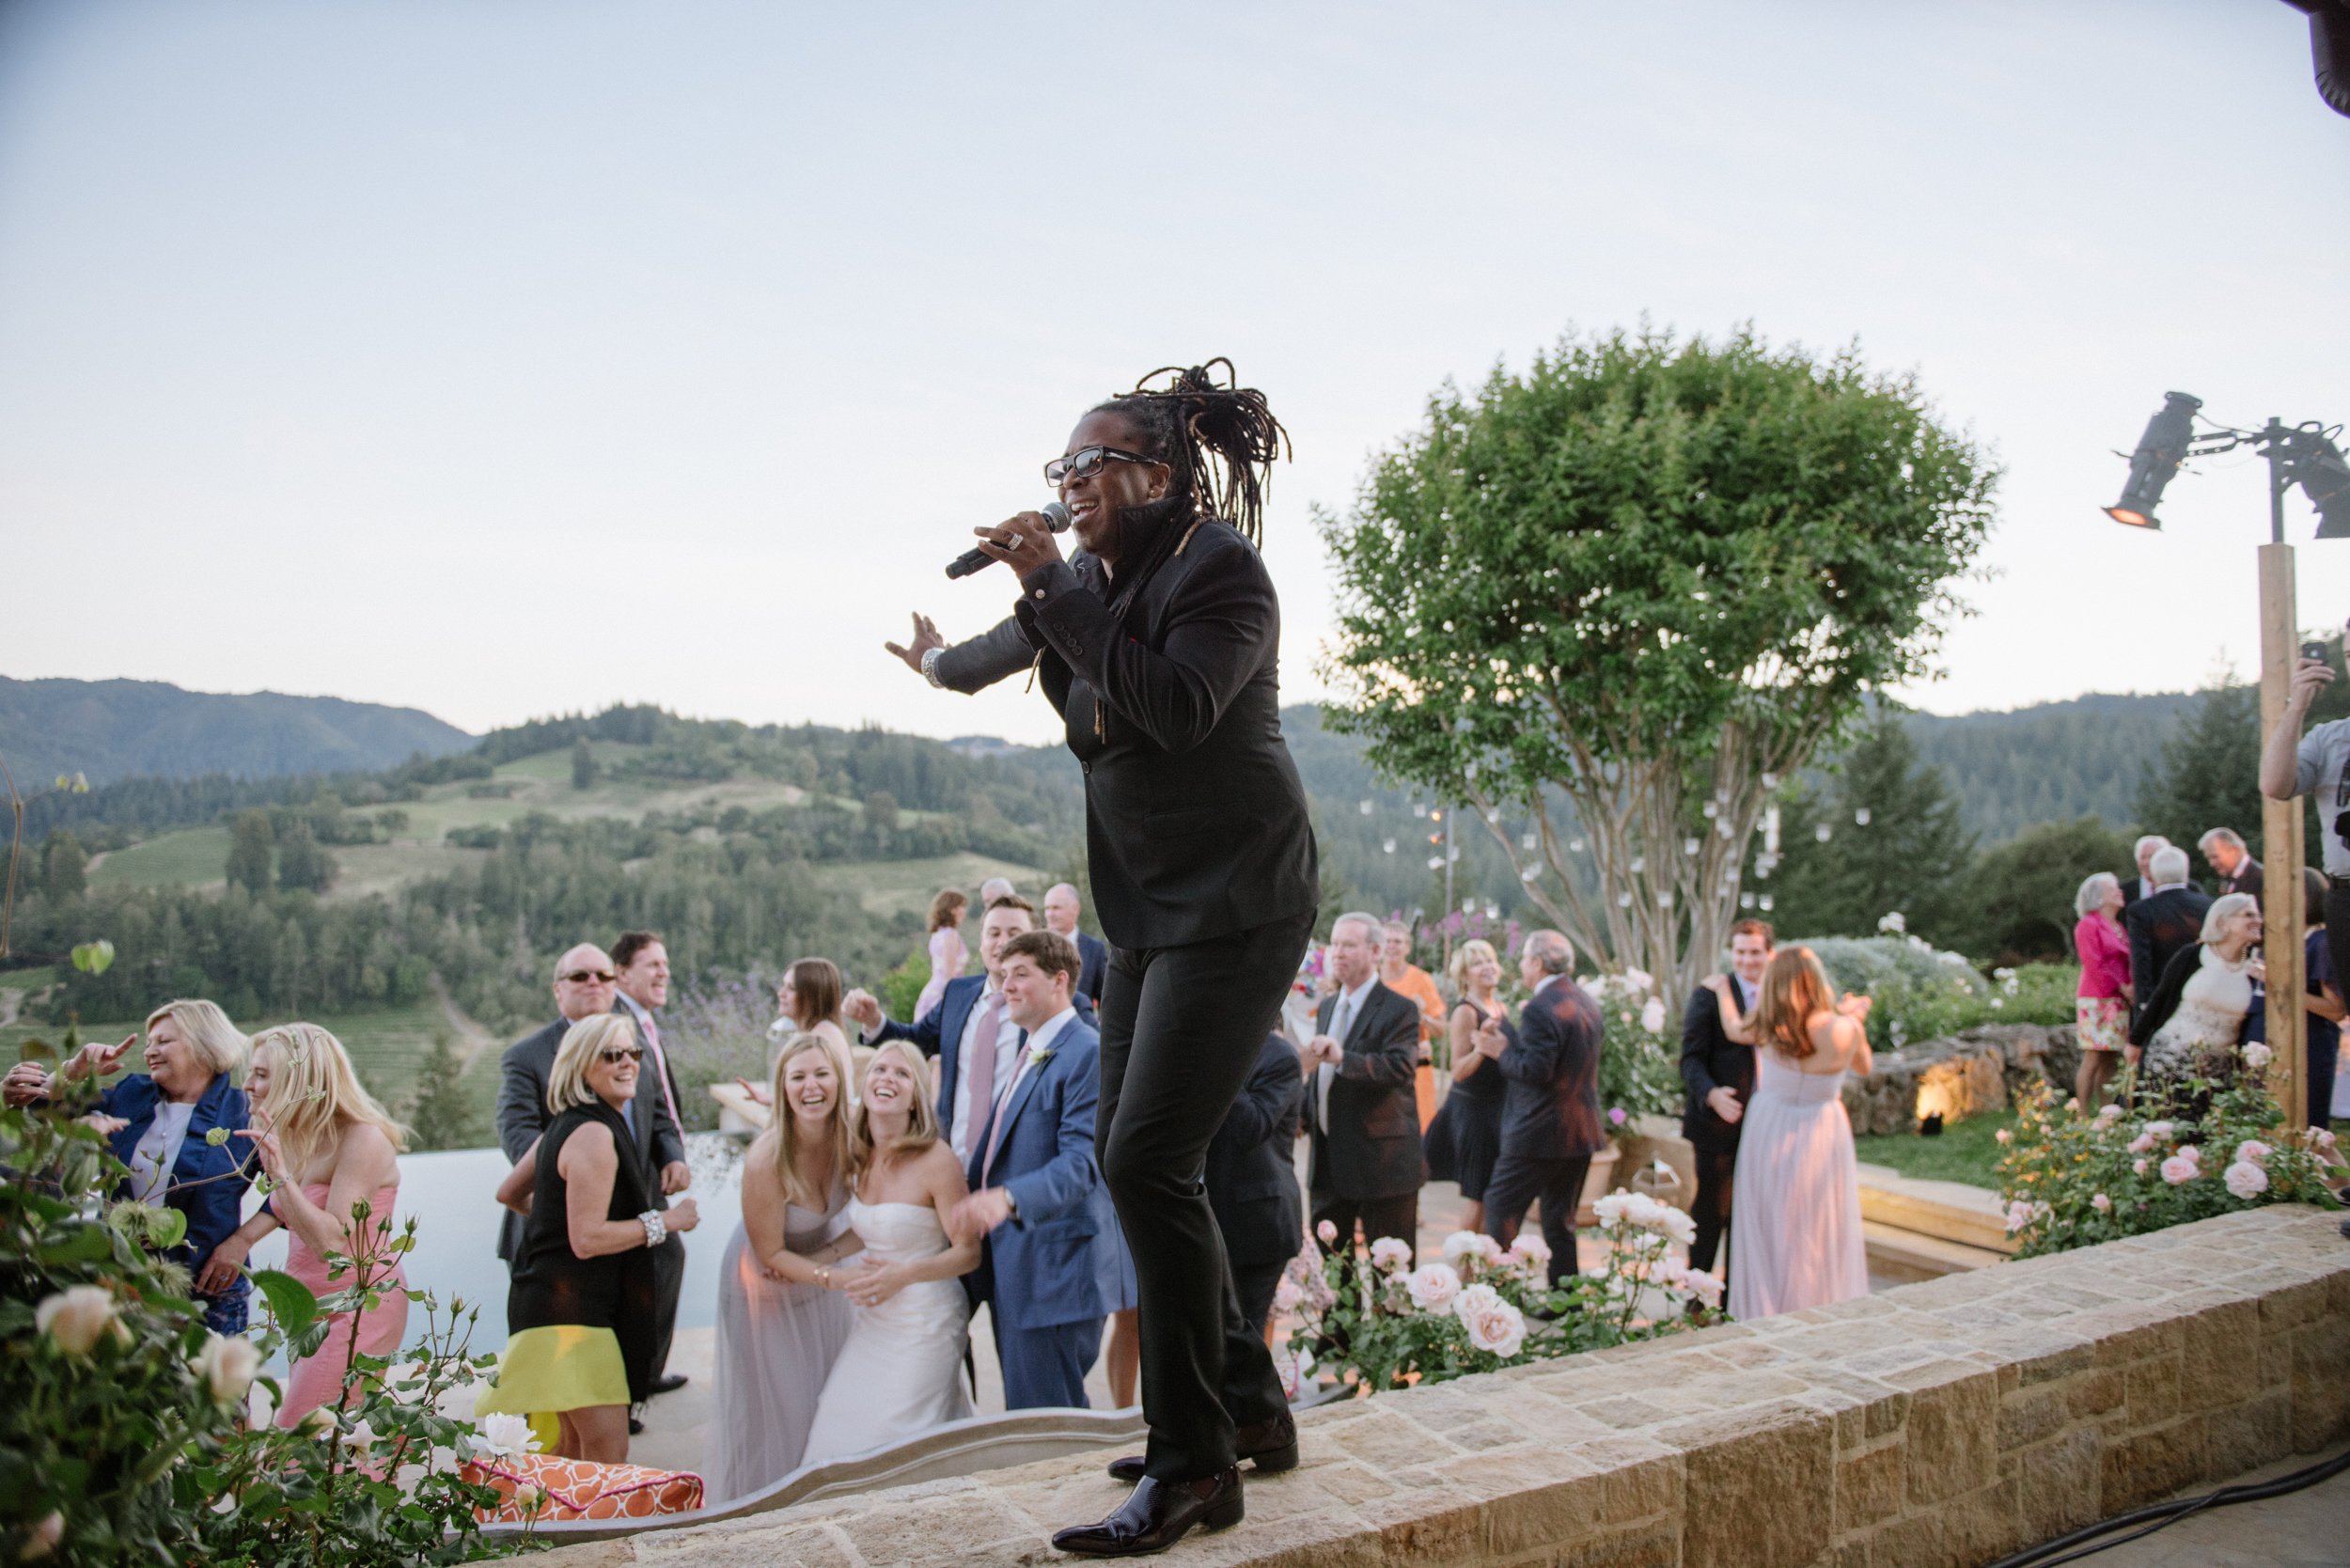 The wedding band provided an energetic backdrop to the reception evening; photo by Sylvie Gil